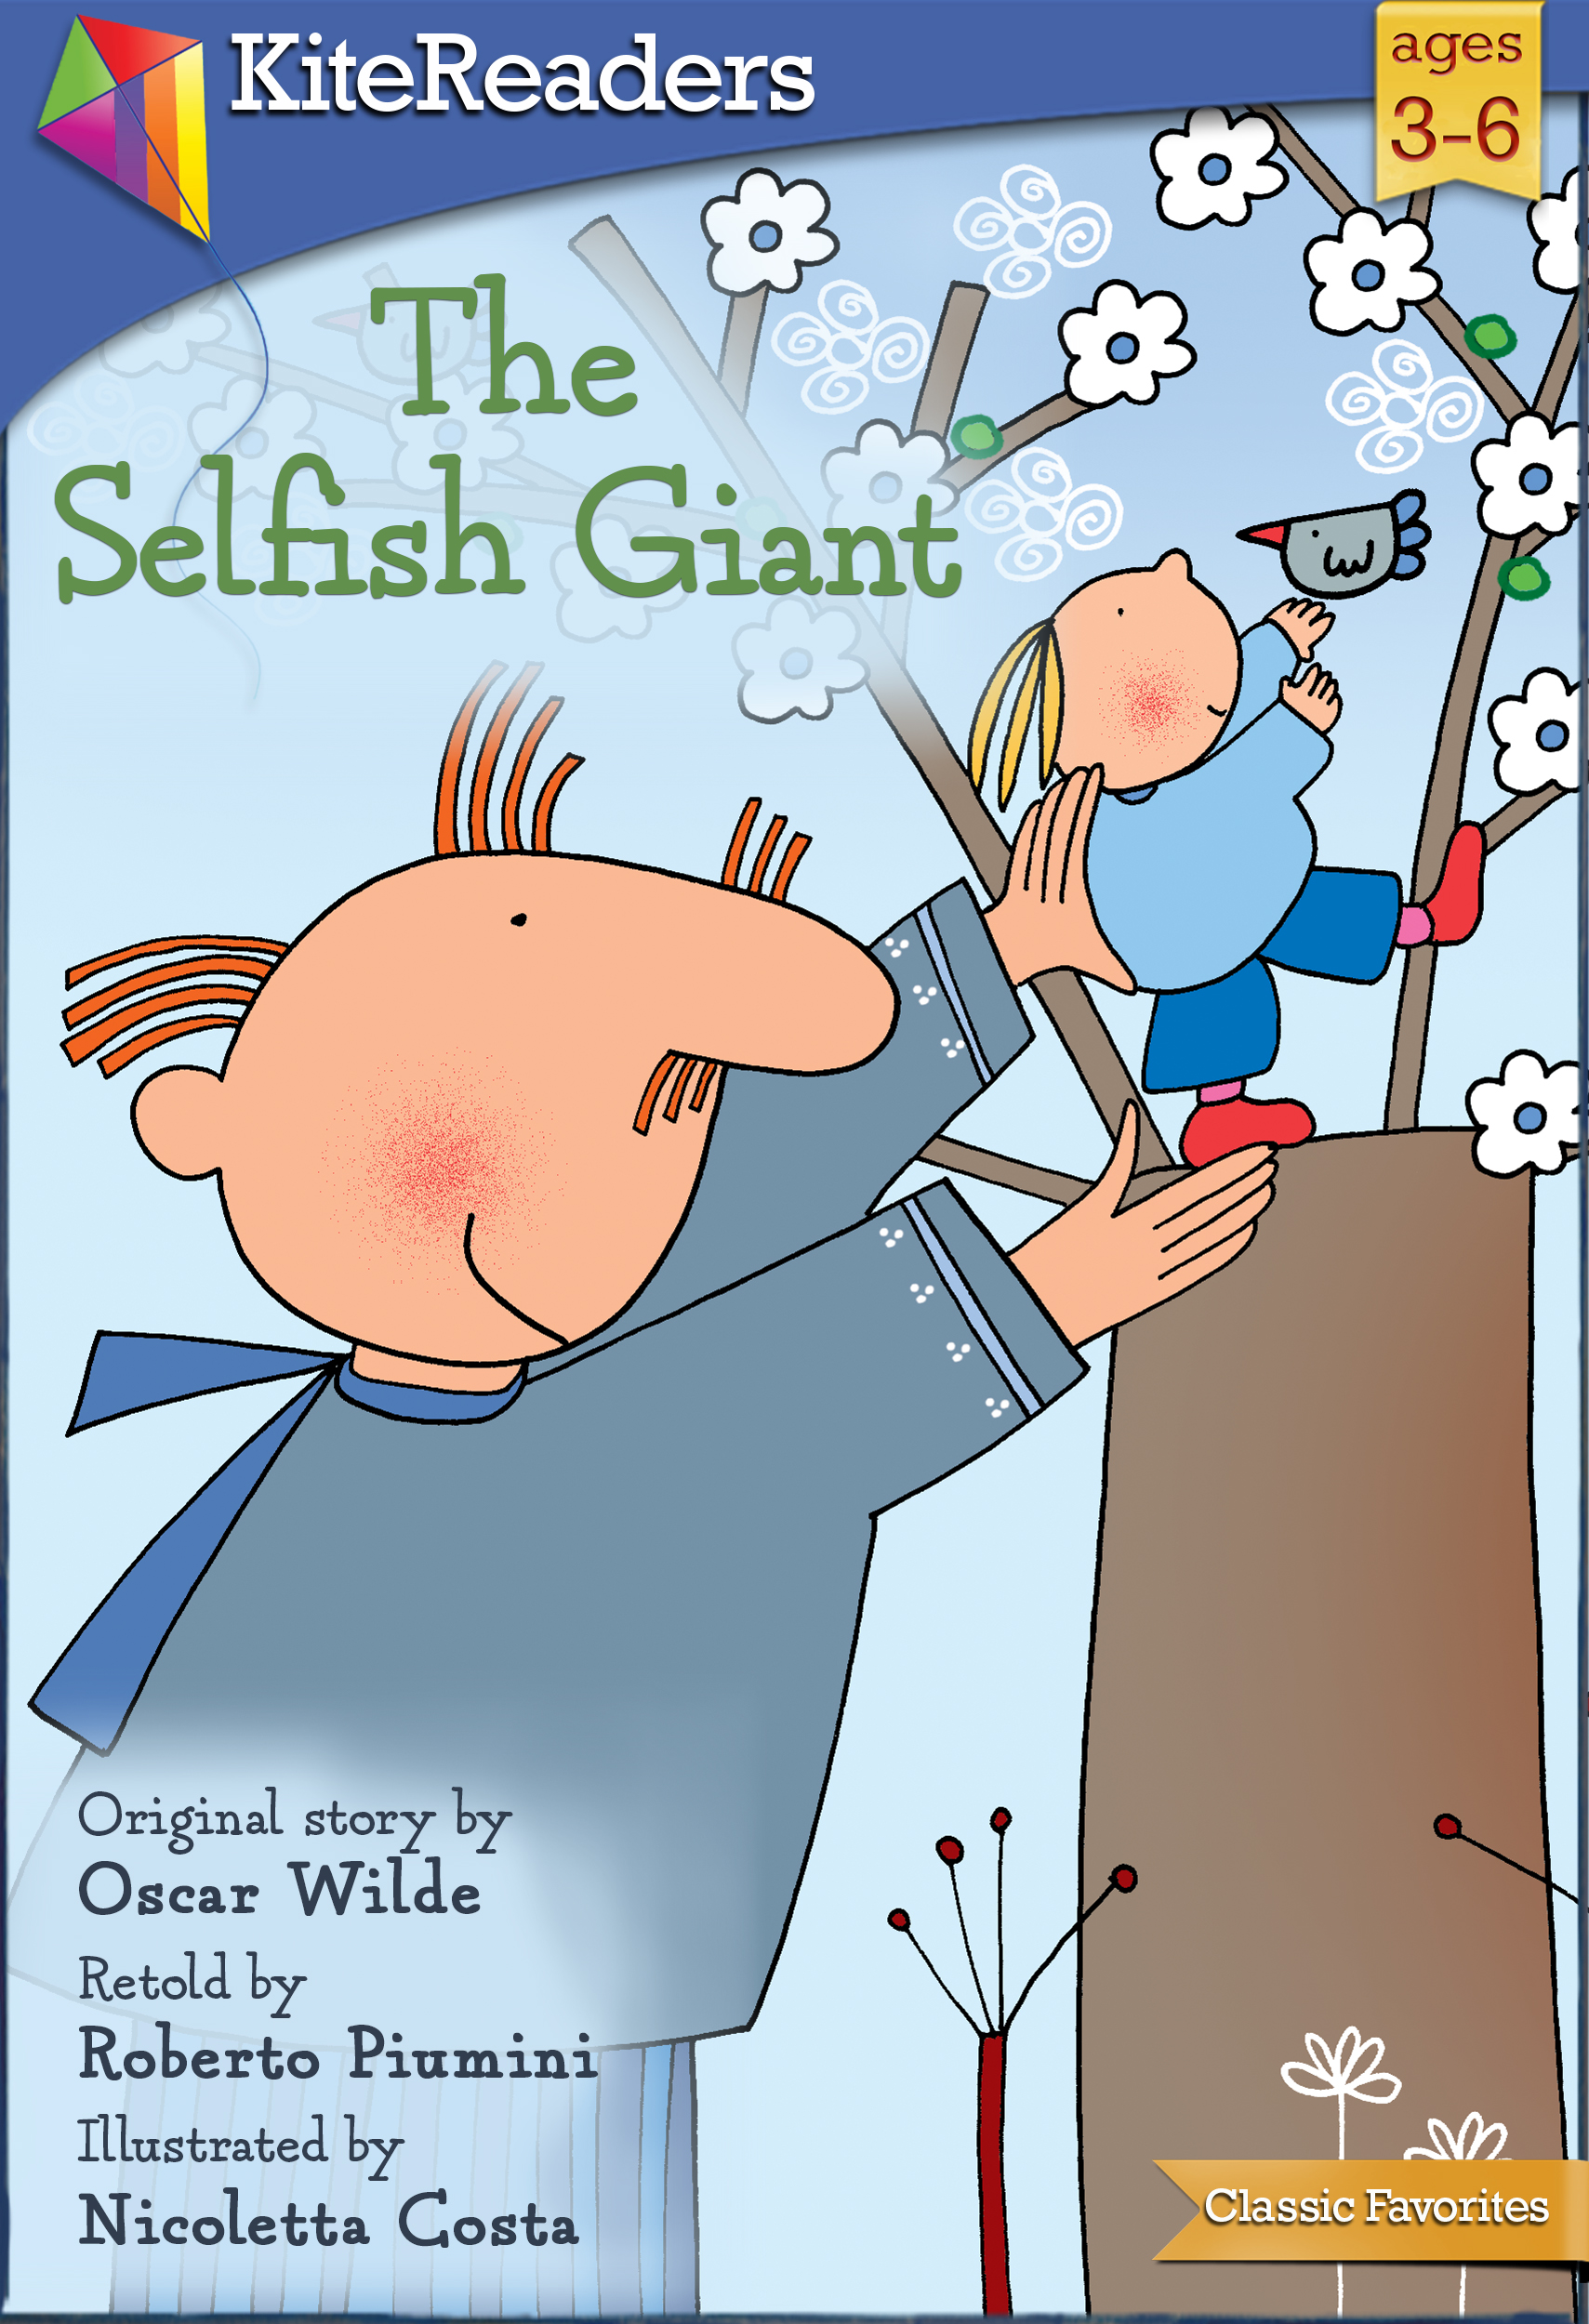 the selfish giant kindle and ibooks bundle kitereaders store